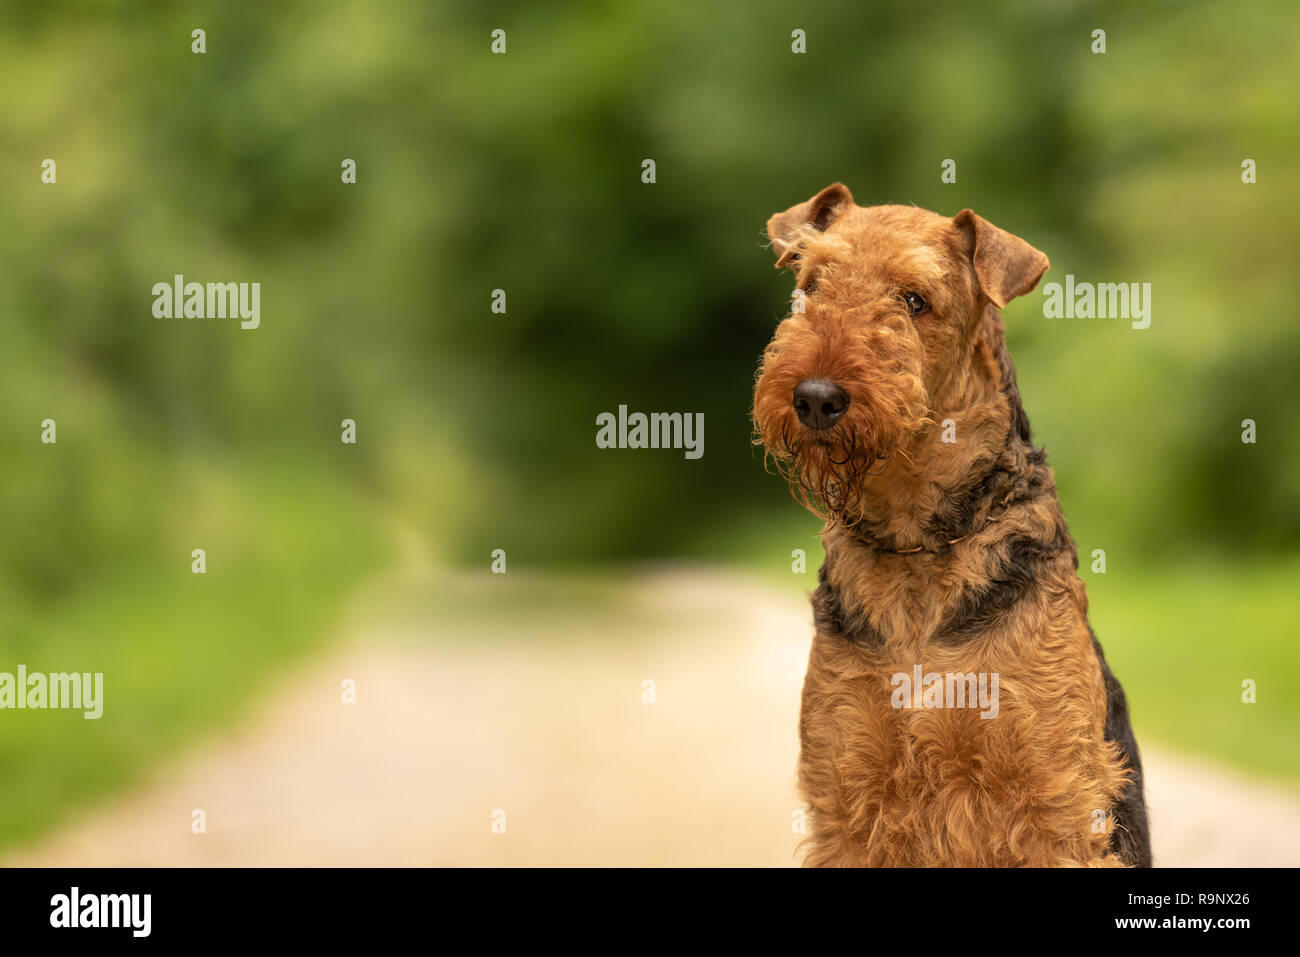 Airedale Terrier. Dogs portrait outdoors from green blurred background in the - Stock Image